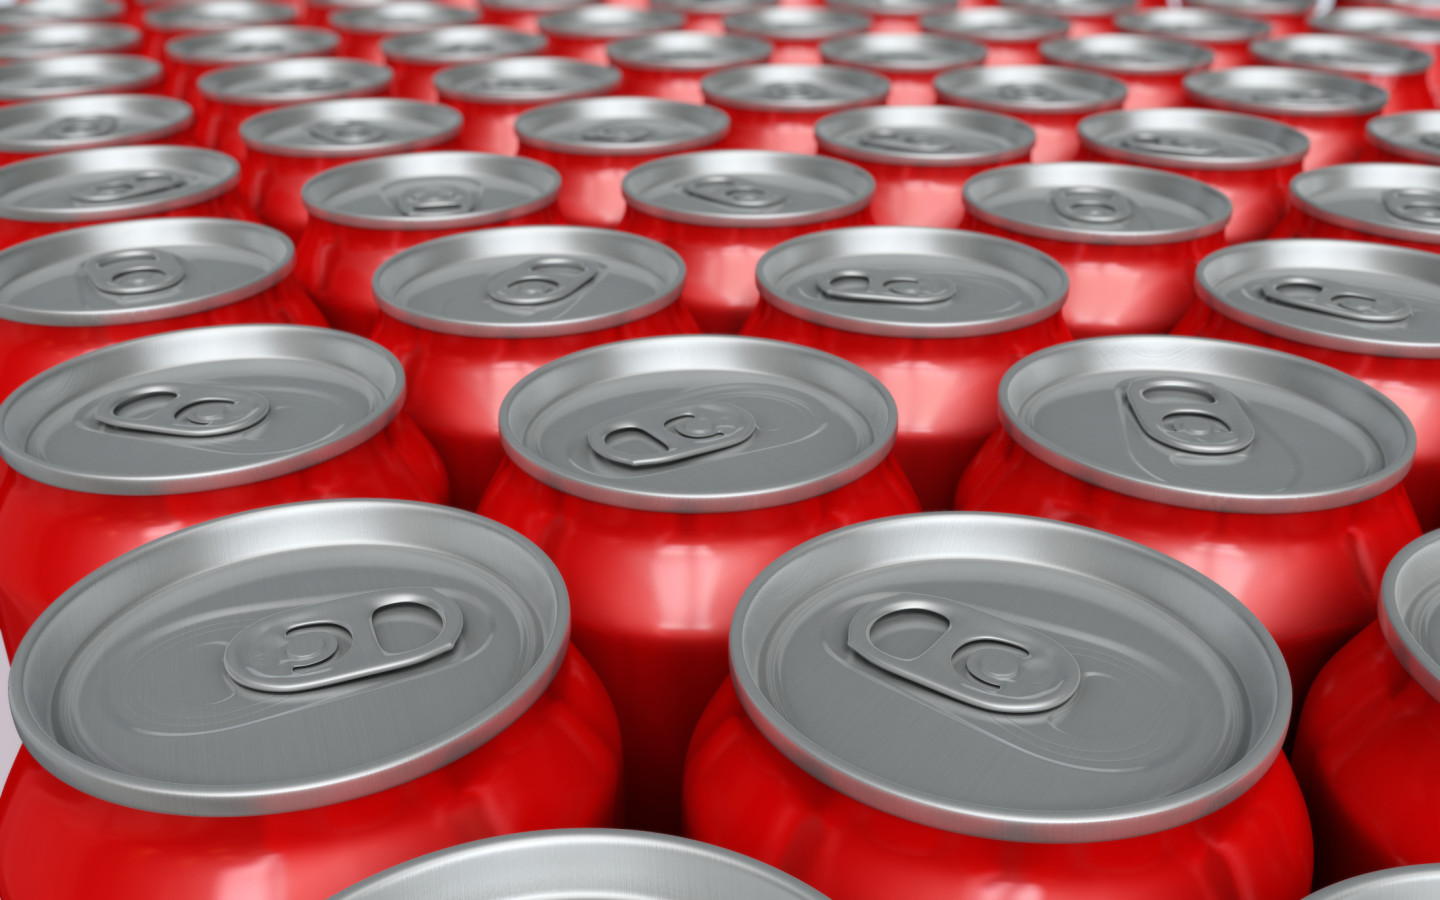 Americans Are Consuming Less Sugar With Decline in Soda Intake